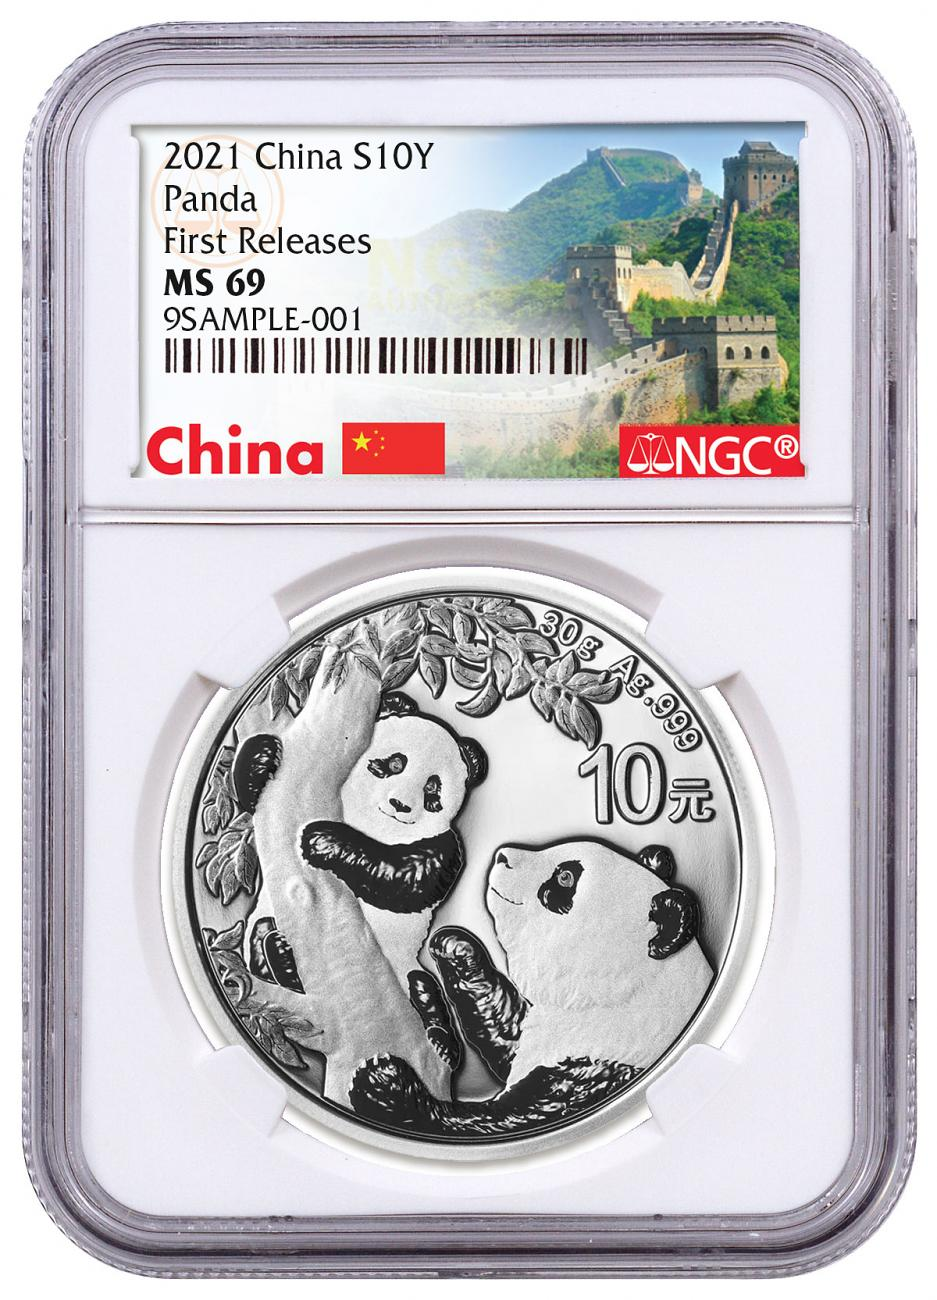 2021 China 30 g Silver Panda ¥10 Coin NGC MS69 FR White Core Holder Great Wall Label